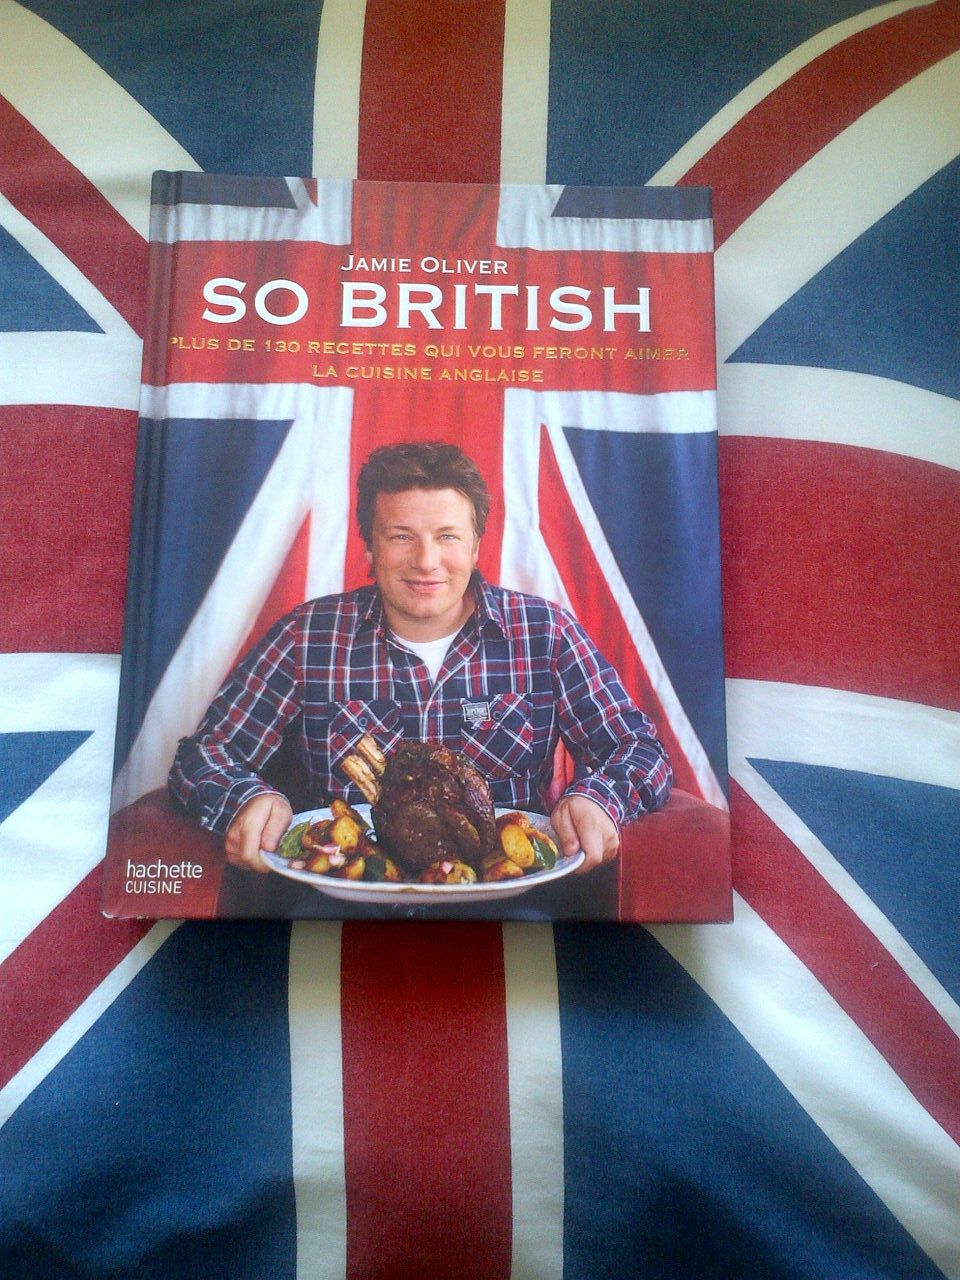 jamie oliver livre so british dans la cuisine de fran oise. Black Bedroom Furniture Sets. Home Design Ideas